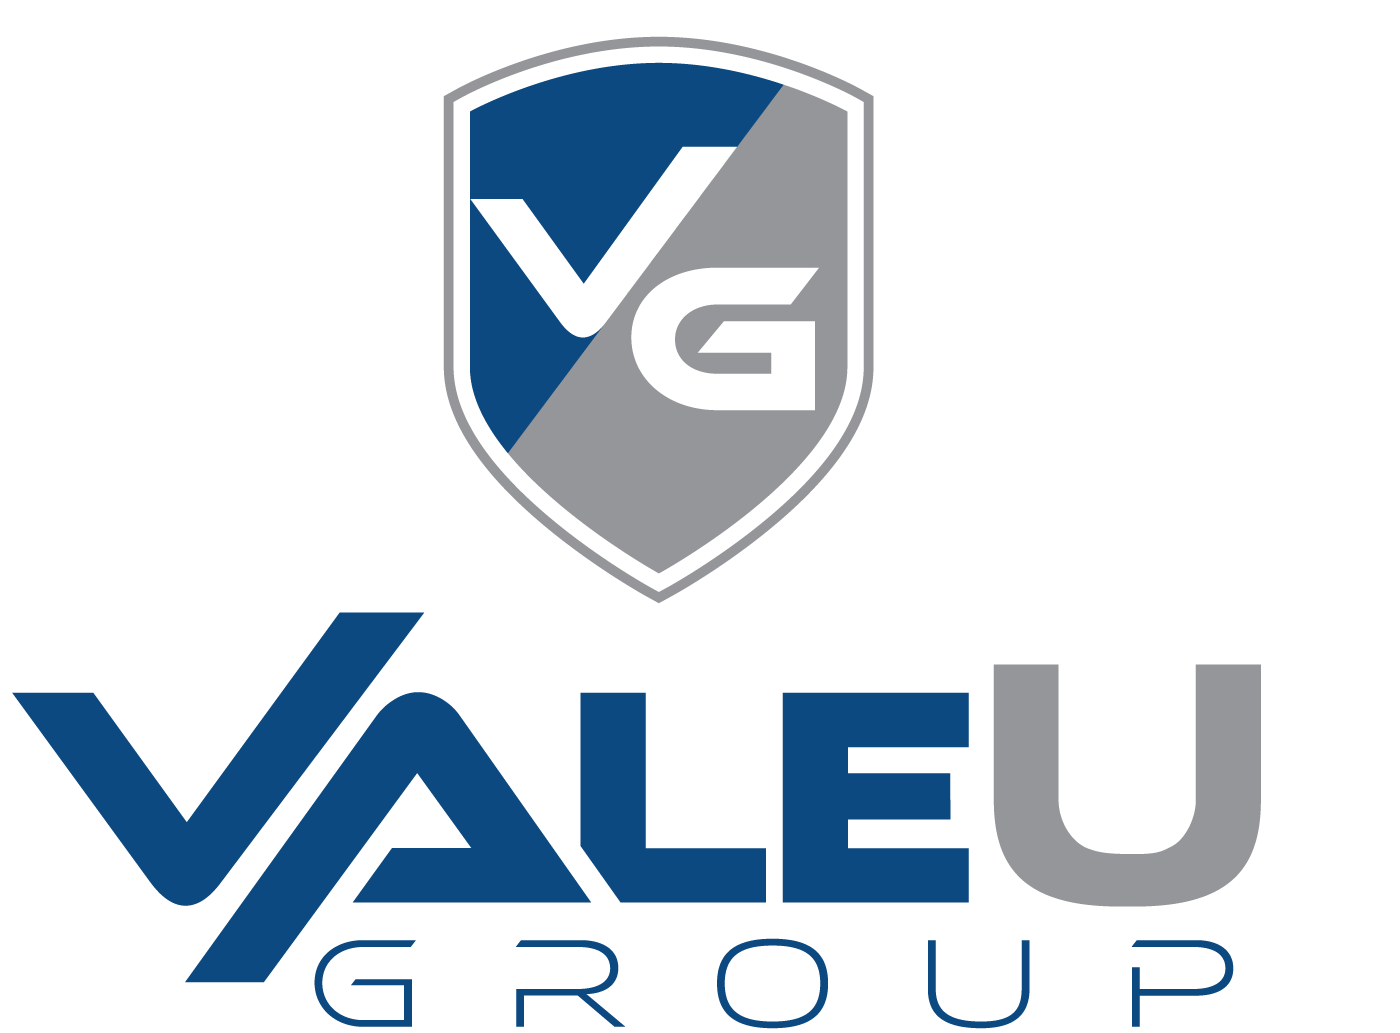 ValeU_Shield_stacked_color.png